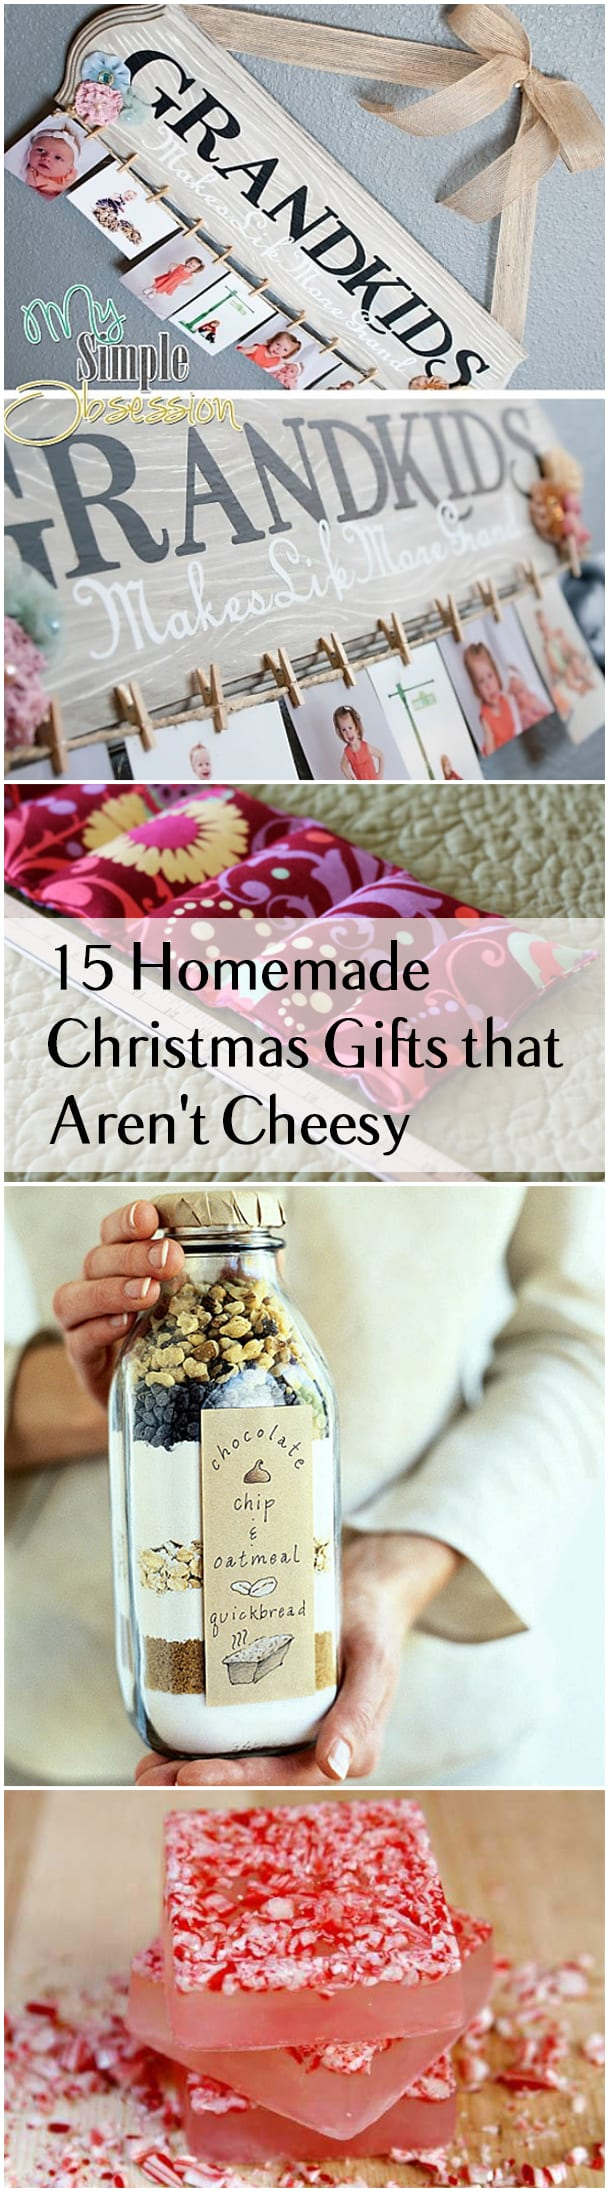 15 Homemade Christmas Gifts that Aren't Cheesy Handmade Christmas Gifts 2018